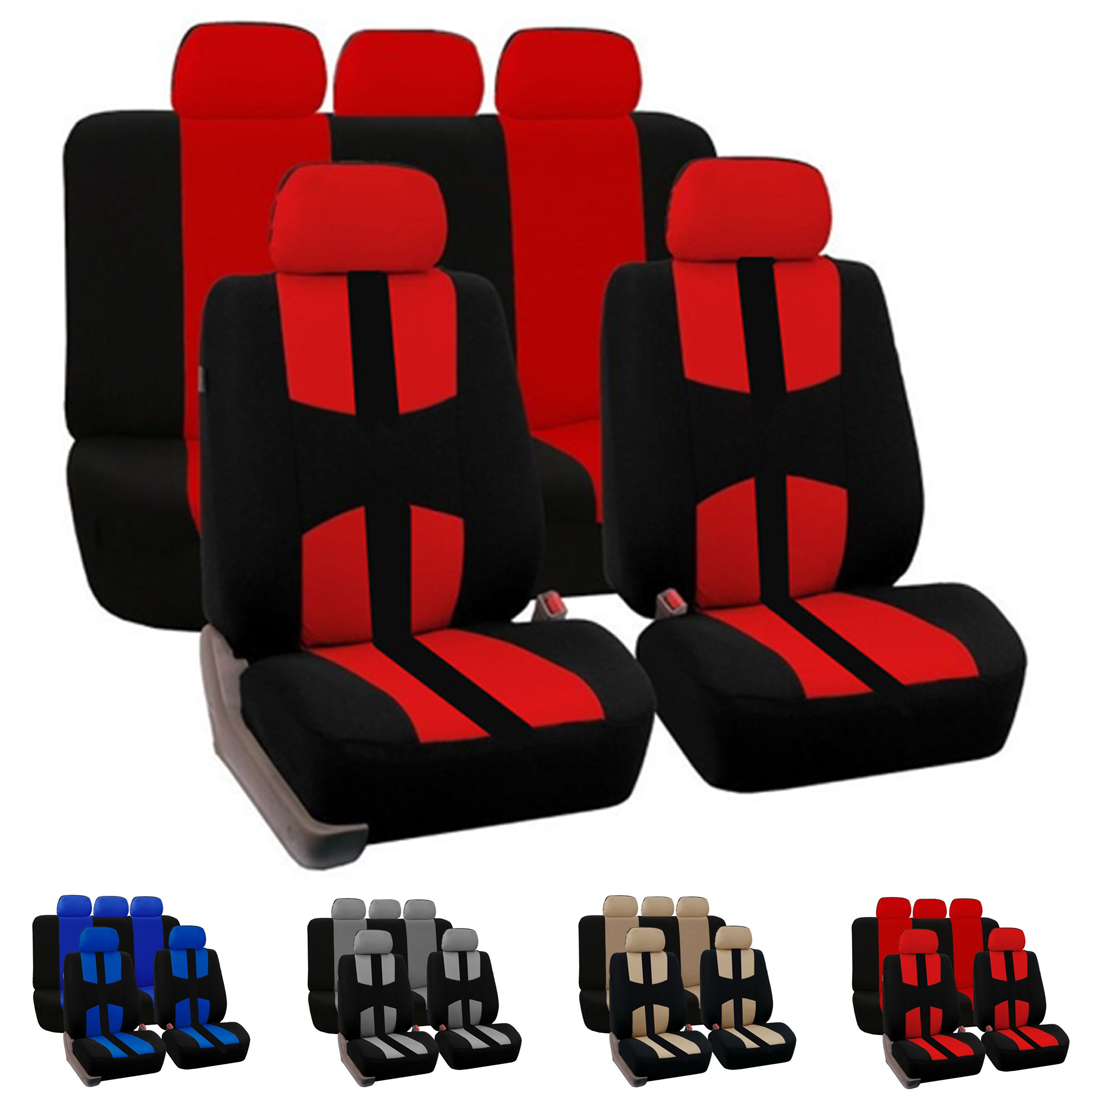 Dewtreetali Four Seasons 9pcs/set Car Seat Covers Full Set Car Seat Cushion Universal Seat Covers Protector for VW BMW AUDI dewtreetali universal automoblies seat cover four seaons car seat protector full set car accessories car styling for vw bmw audi